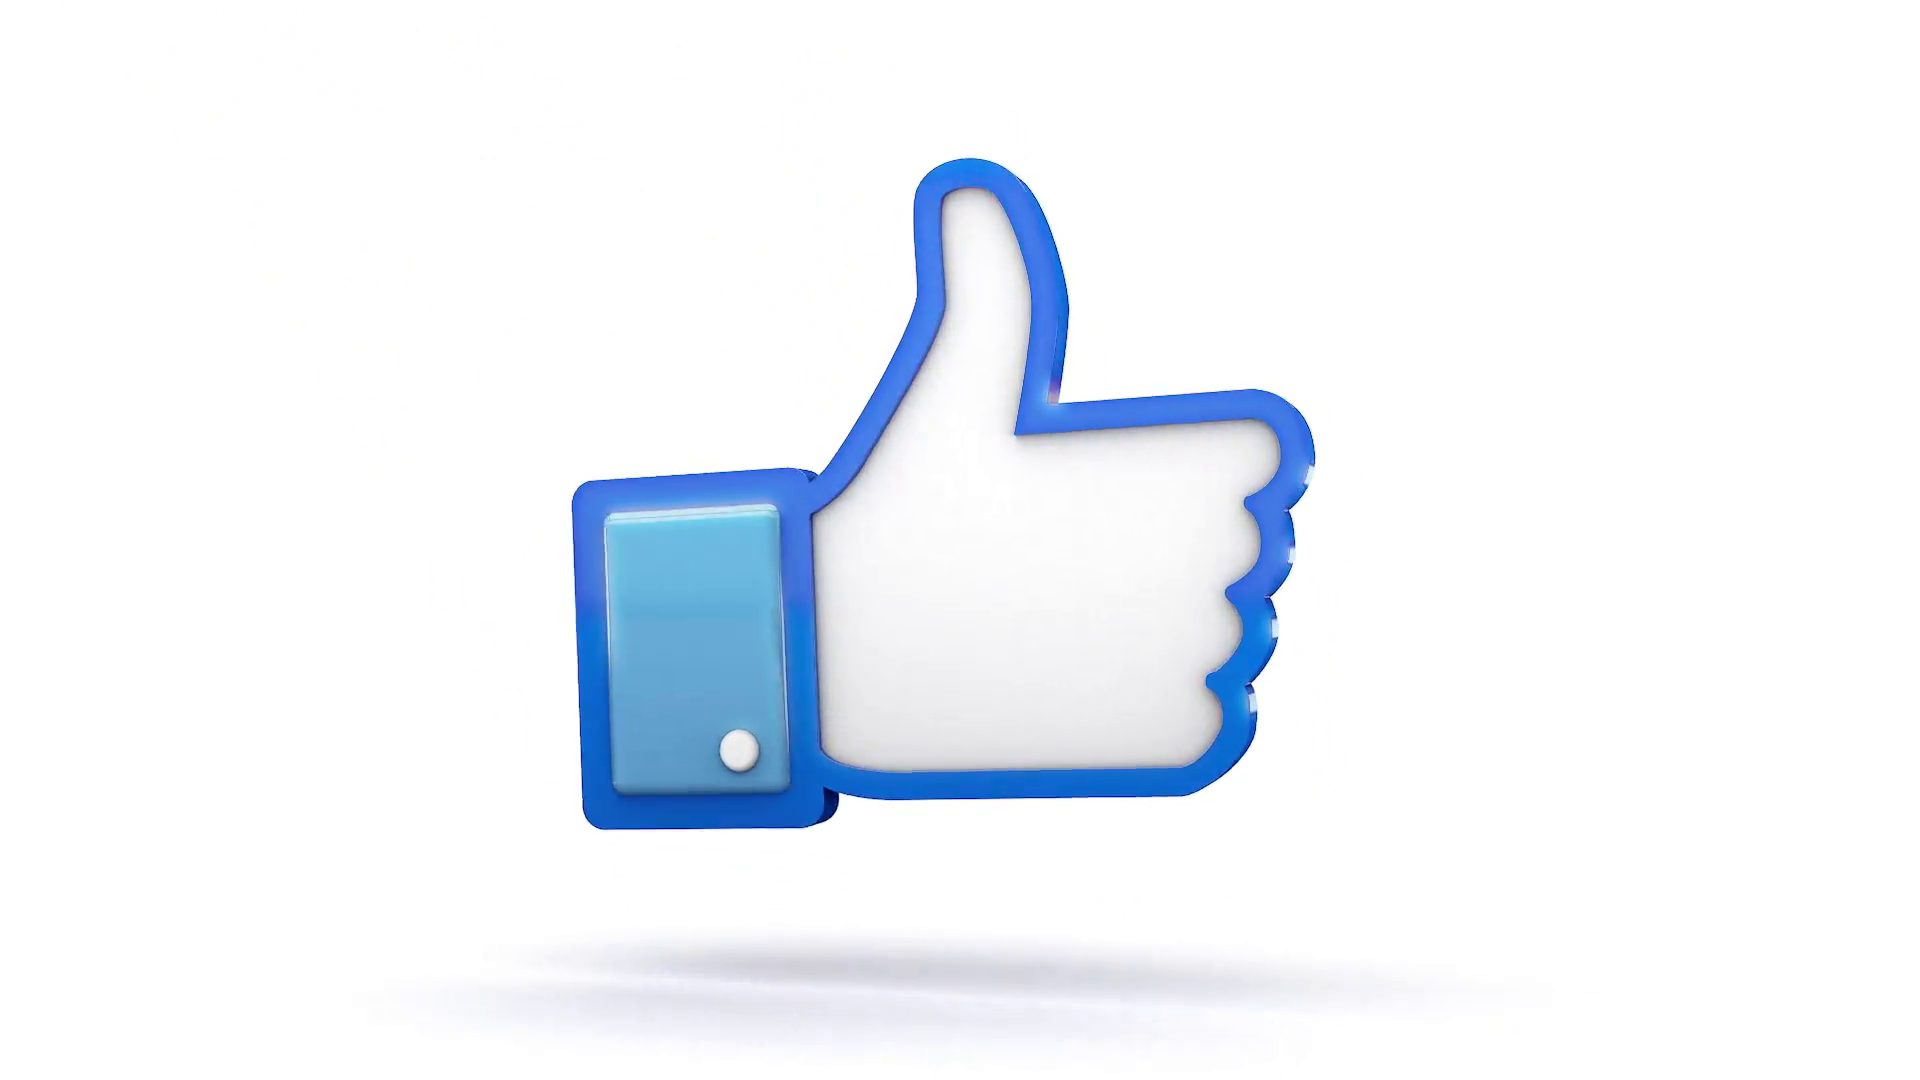 Facebook Thumbs Up Symbol Animates In Motion Background - Videoblocks